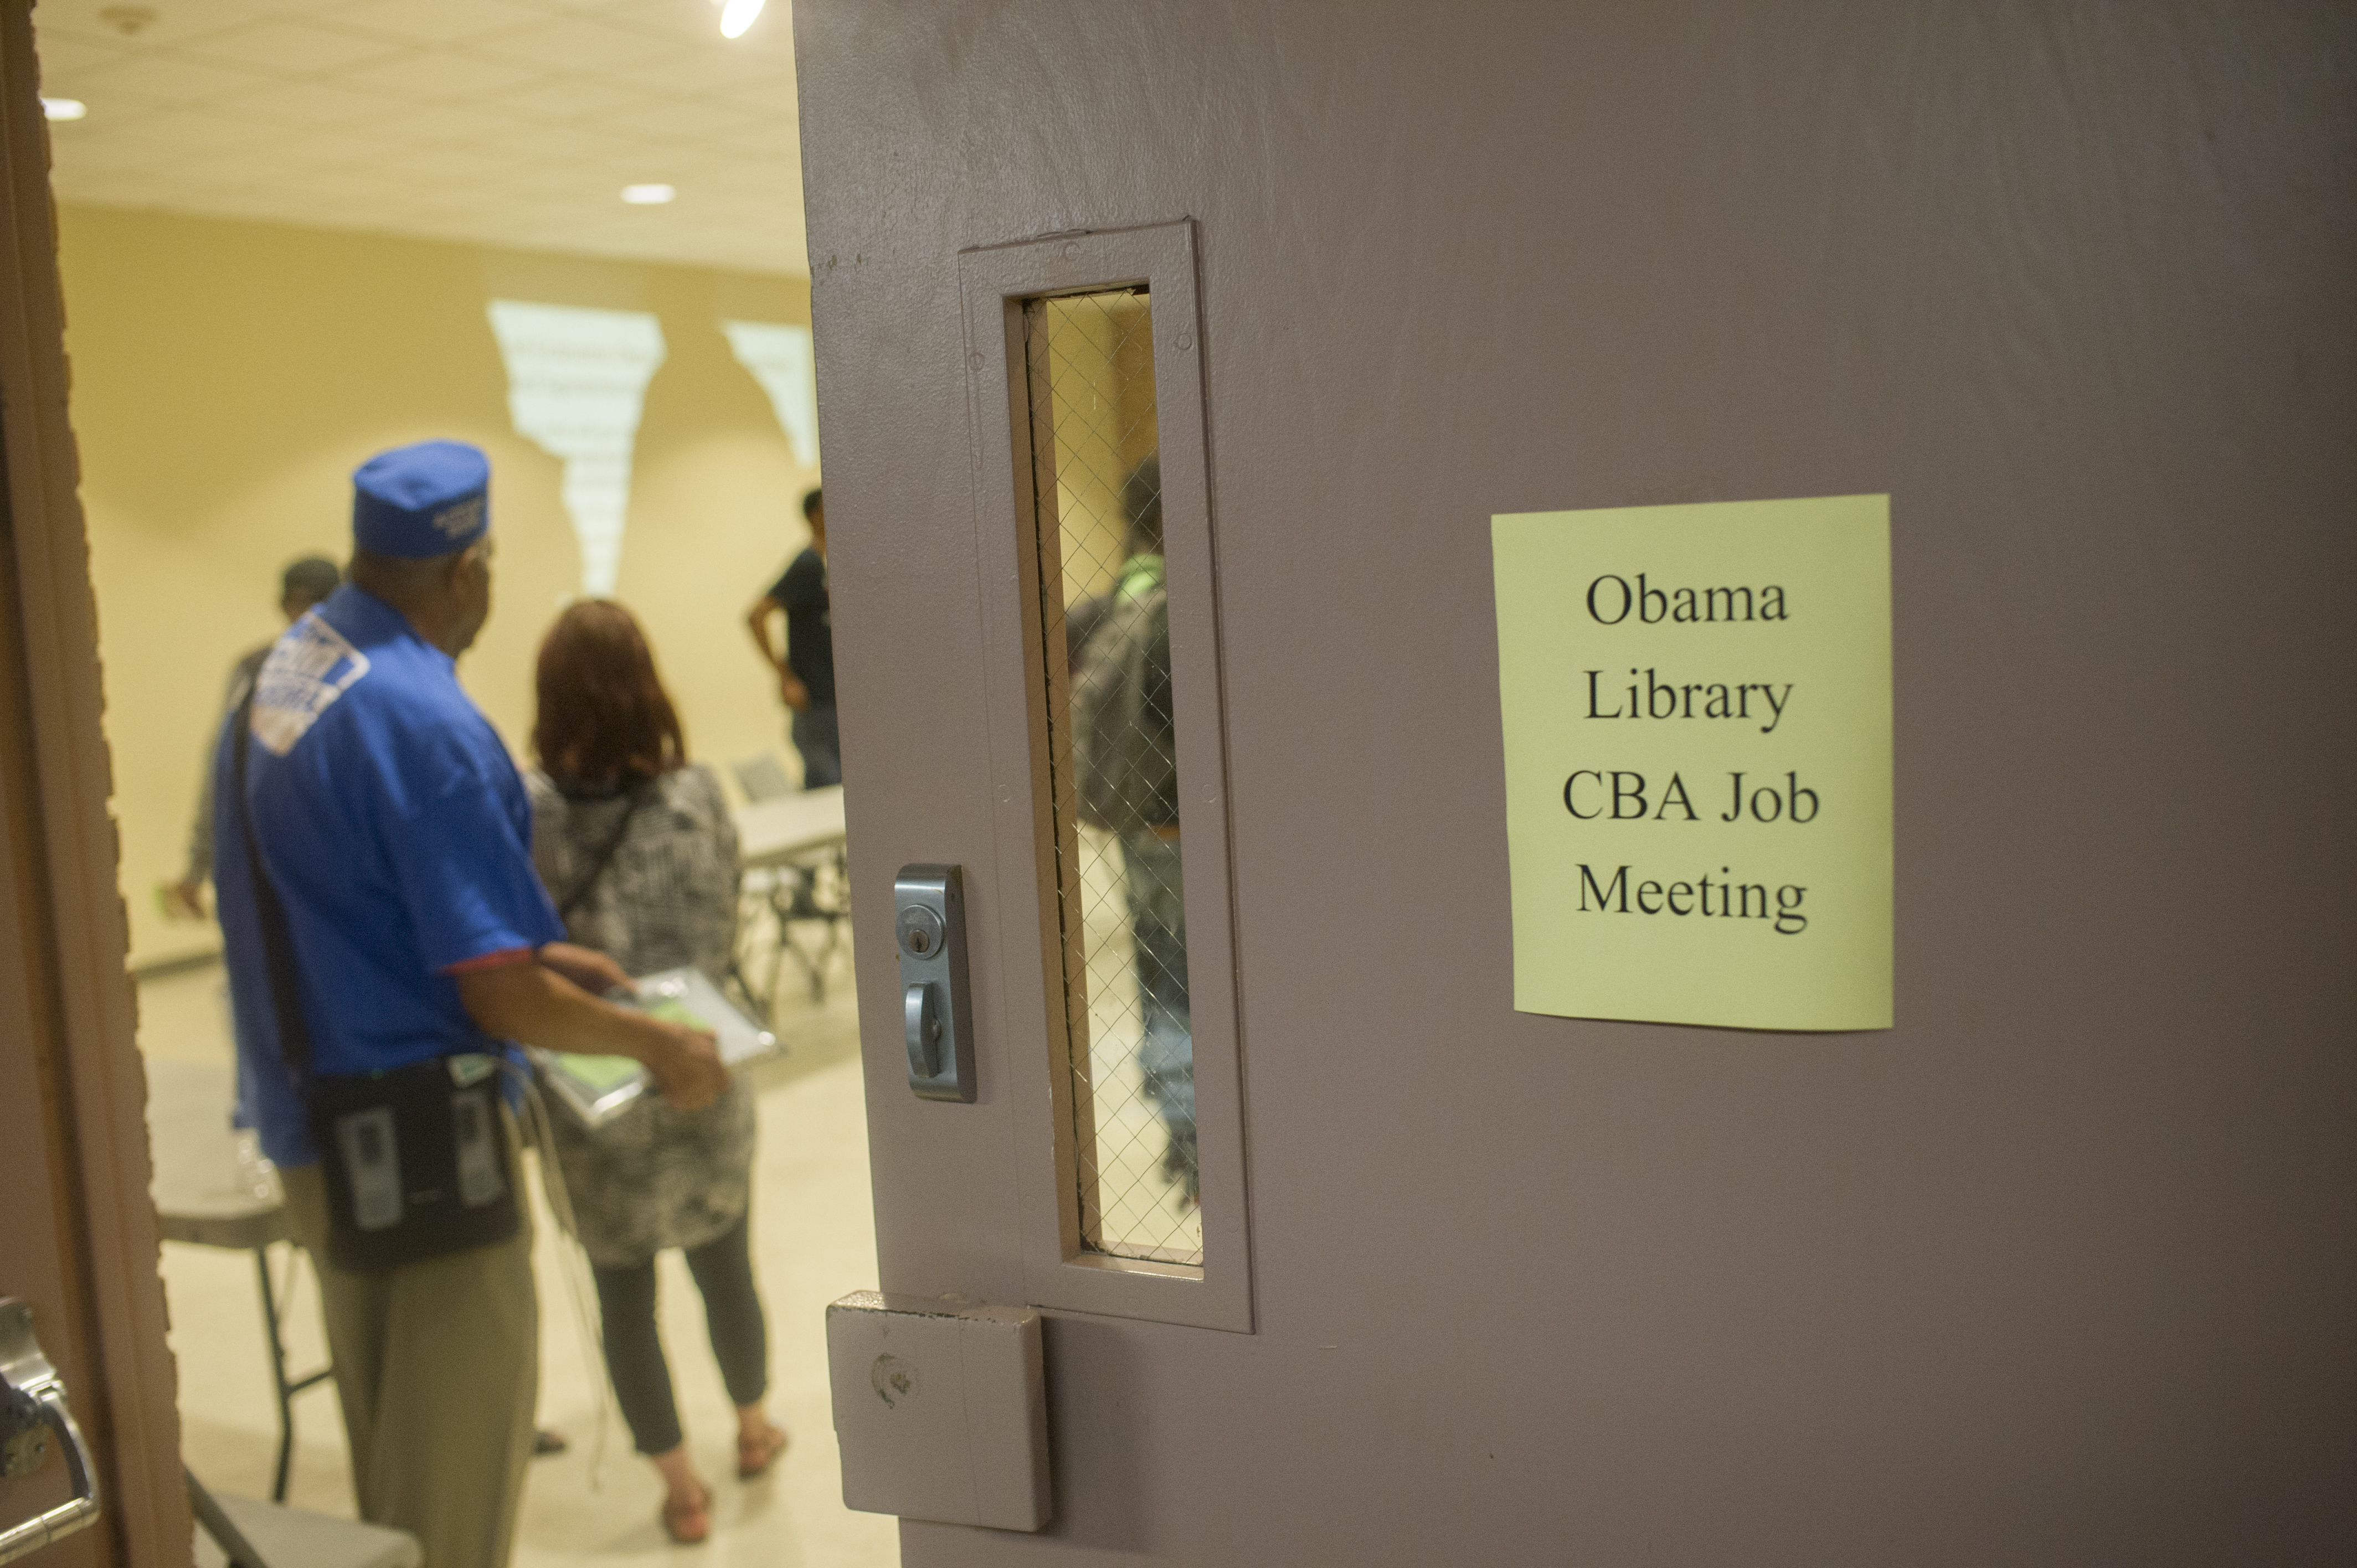 Obama Library South Side CBA Coalition Meeting - June 28, 2017 #009